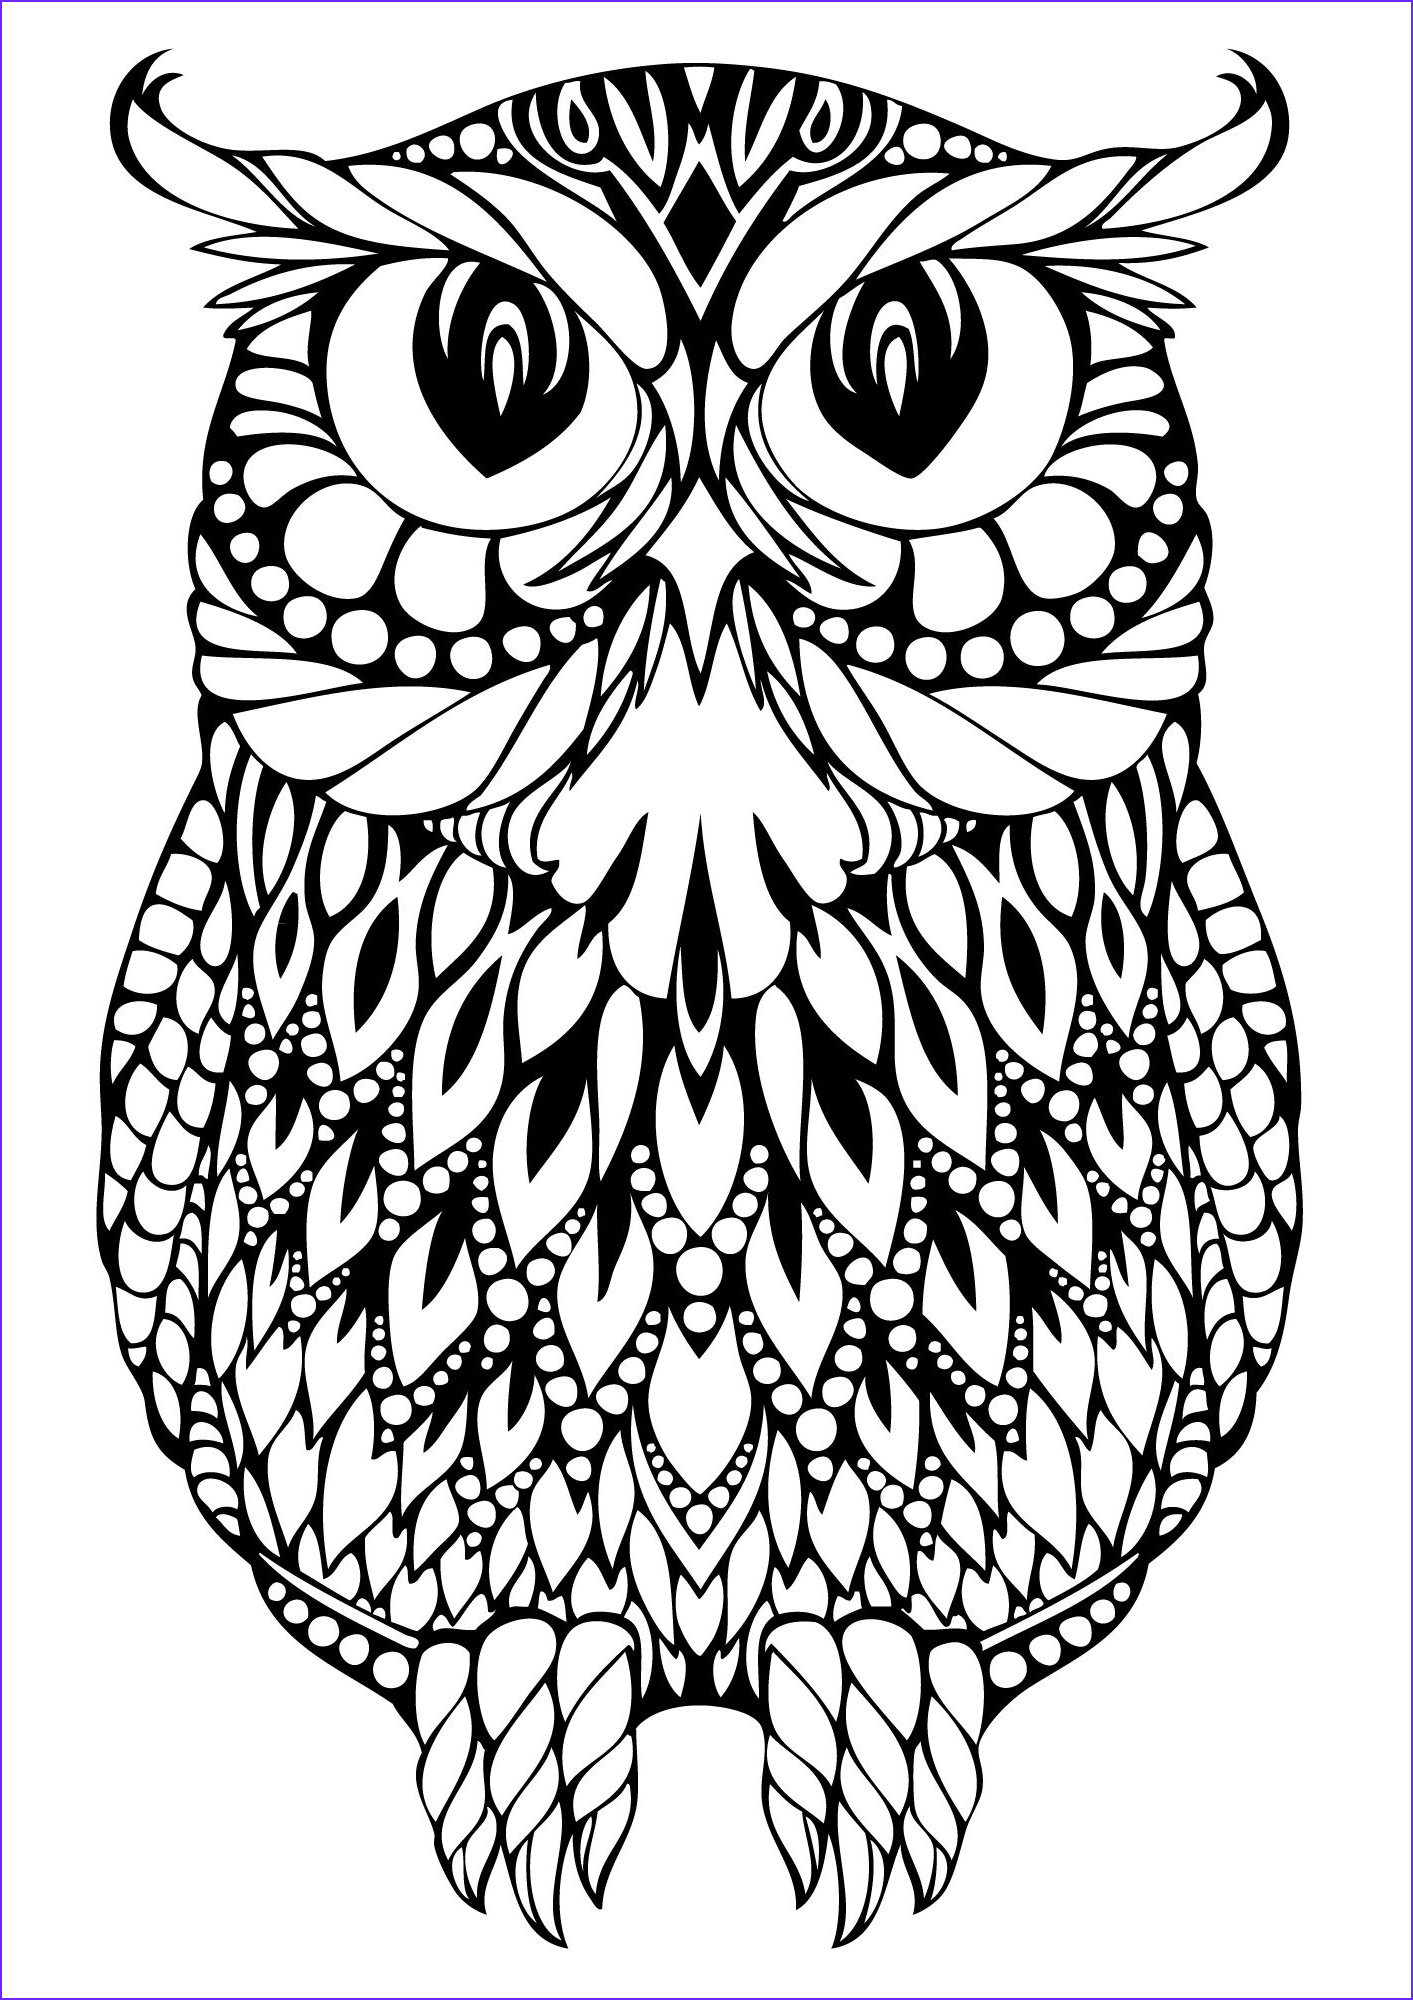 Owl Coloring Books for Adults New Collection Owl Coloring Pages Koloringpages Owls